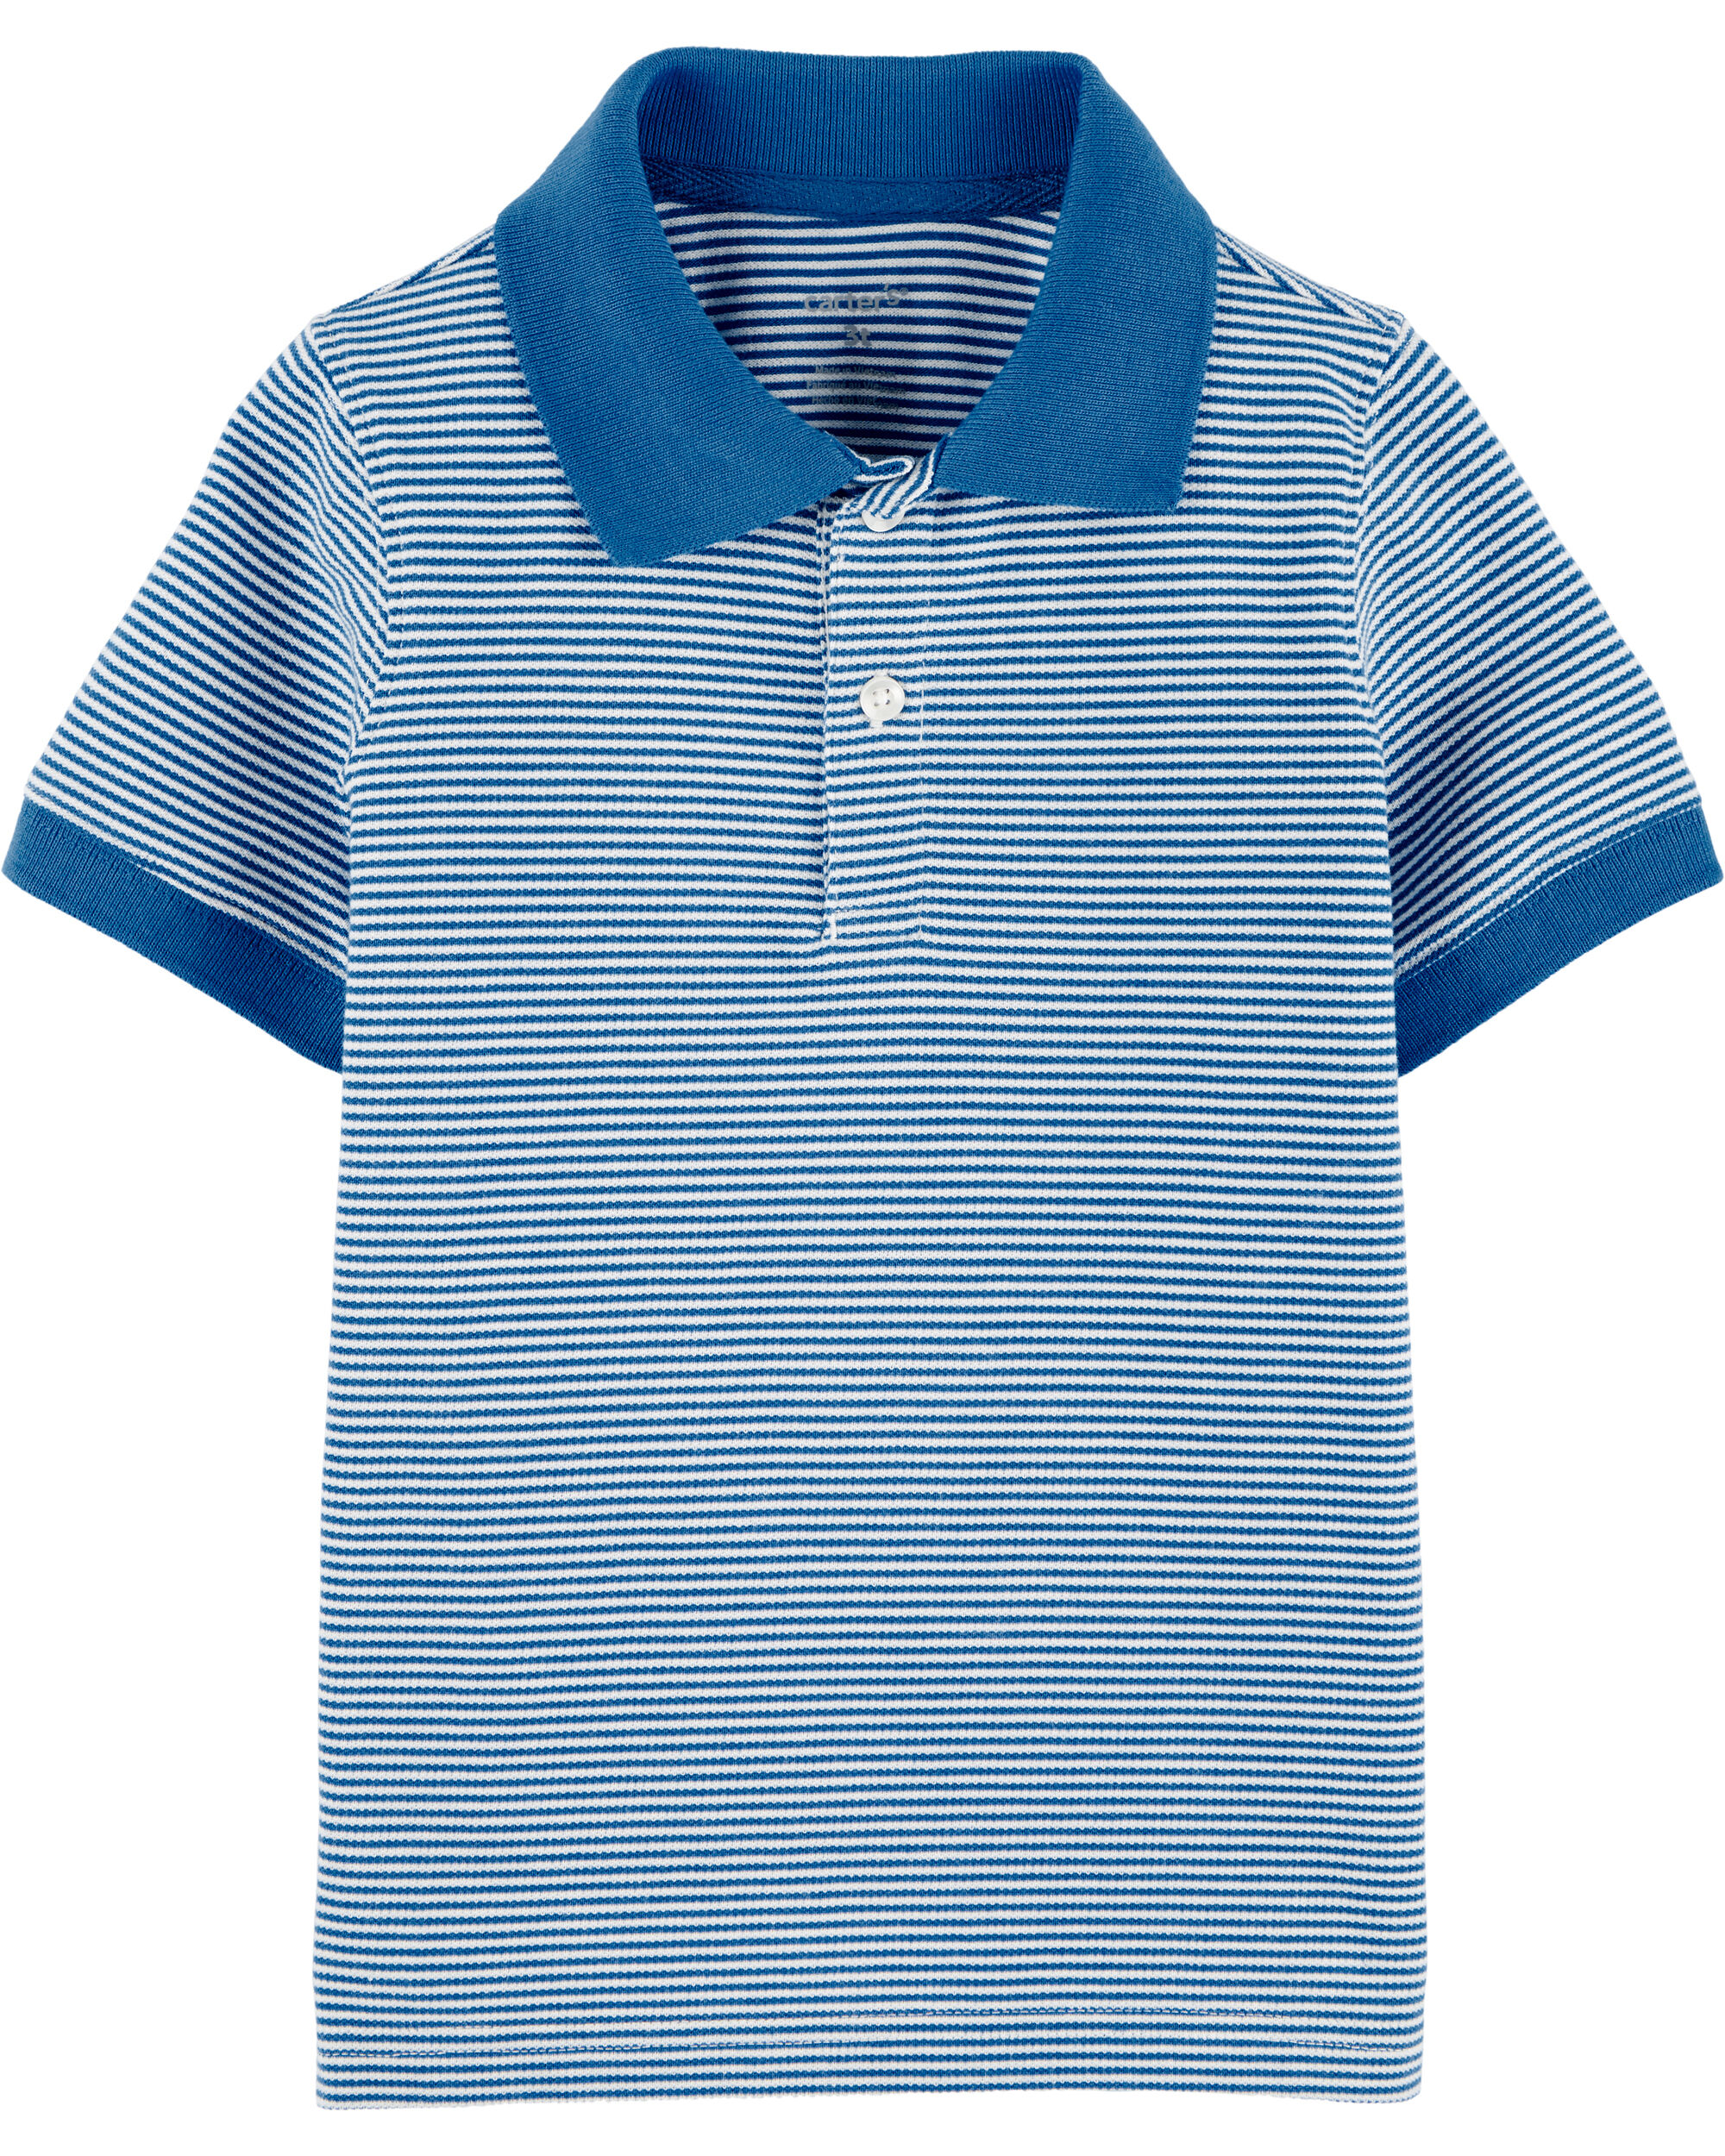 multiple sizes avail NWT Old Navy toddler boys navy blue polo shirt